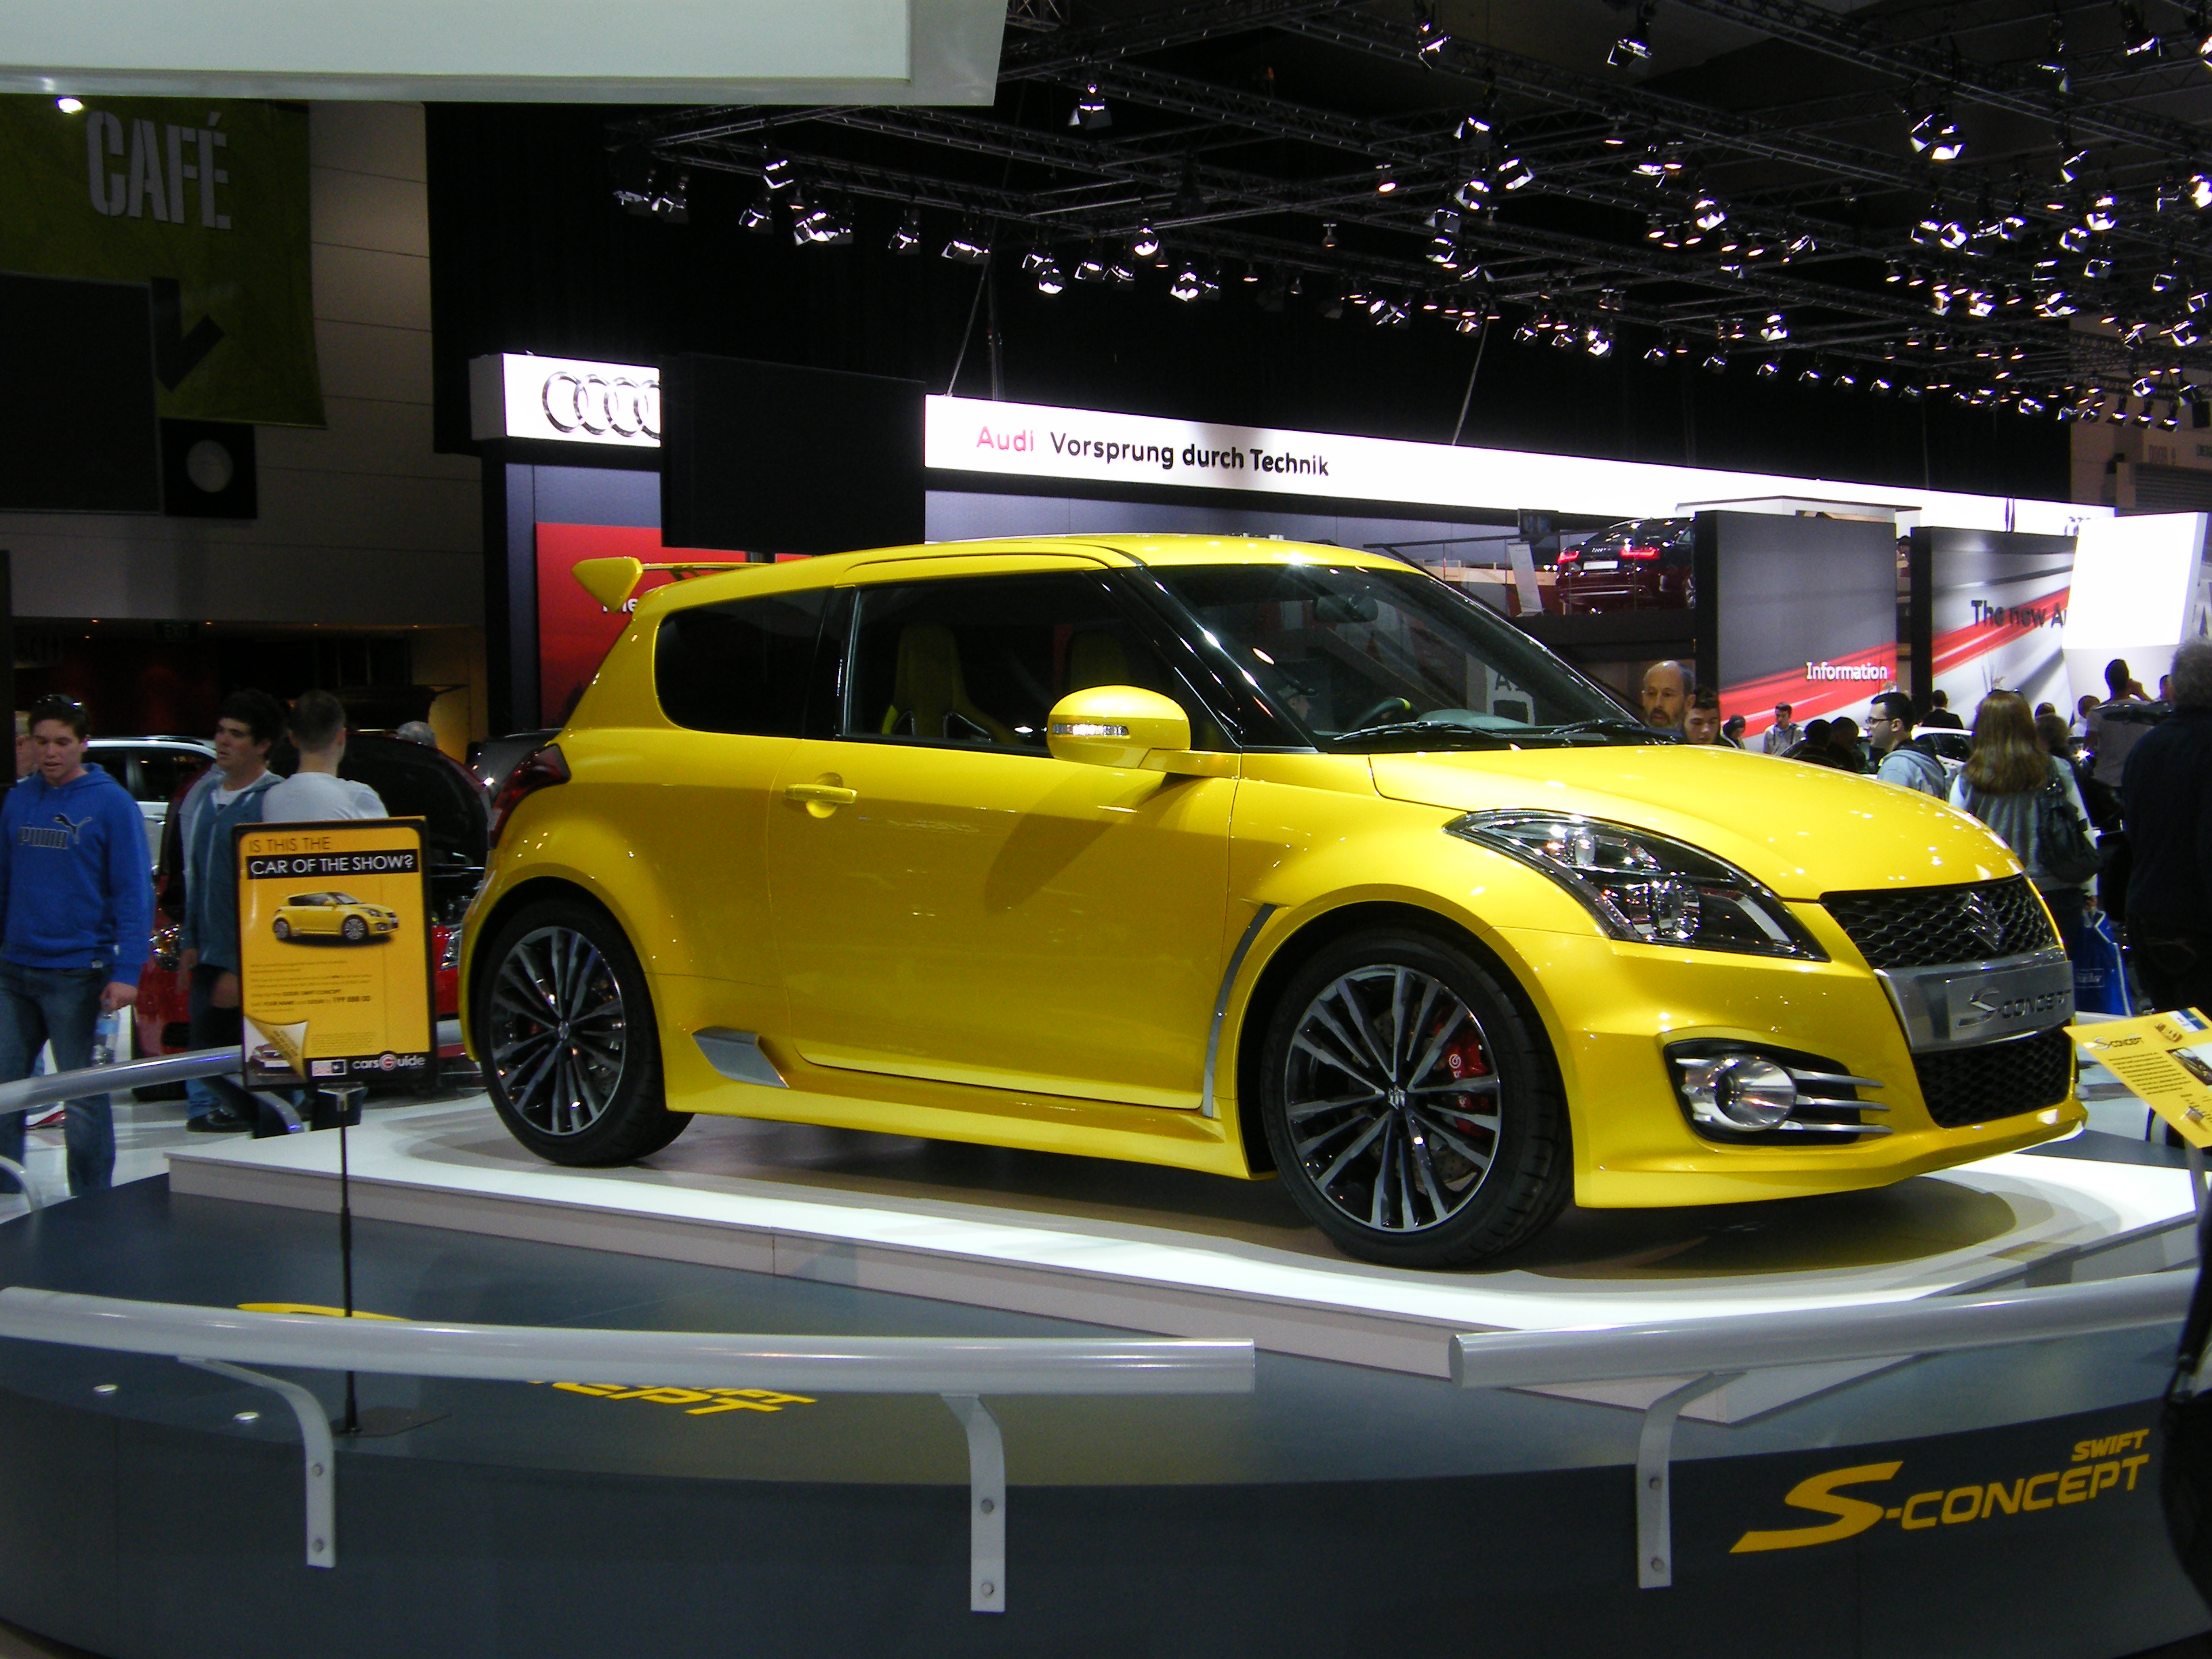 Suzuki Swift Related Imagesstart 200 Weili Automotive Network 2003 Aerio Gs Sedan In Electric Yellow Click To See Large Description 2011 S Concept